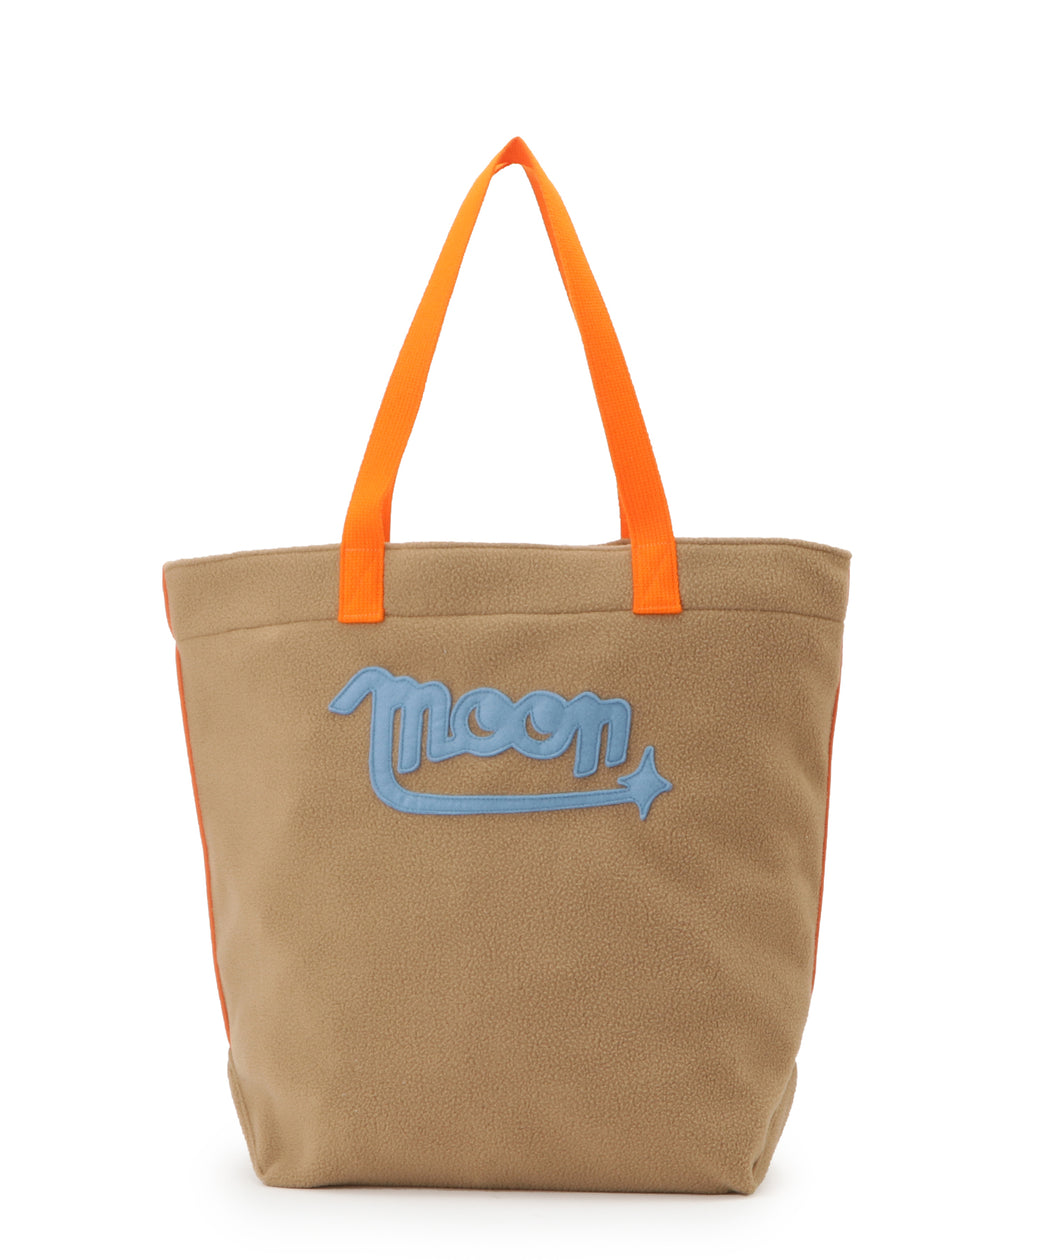 Message tote